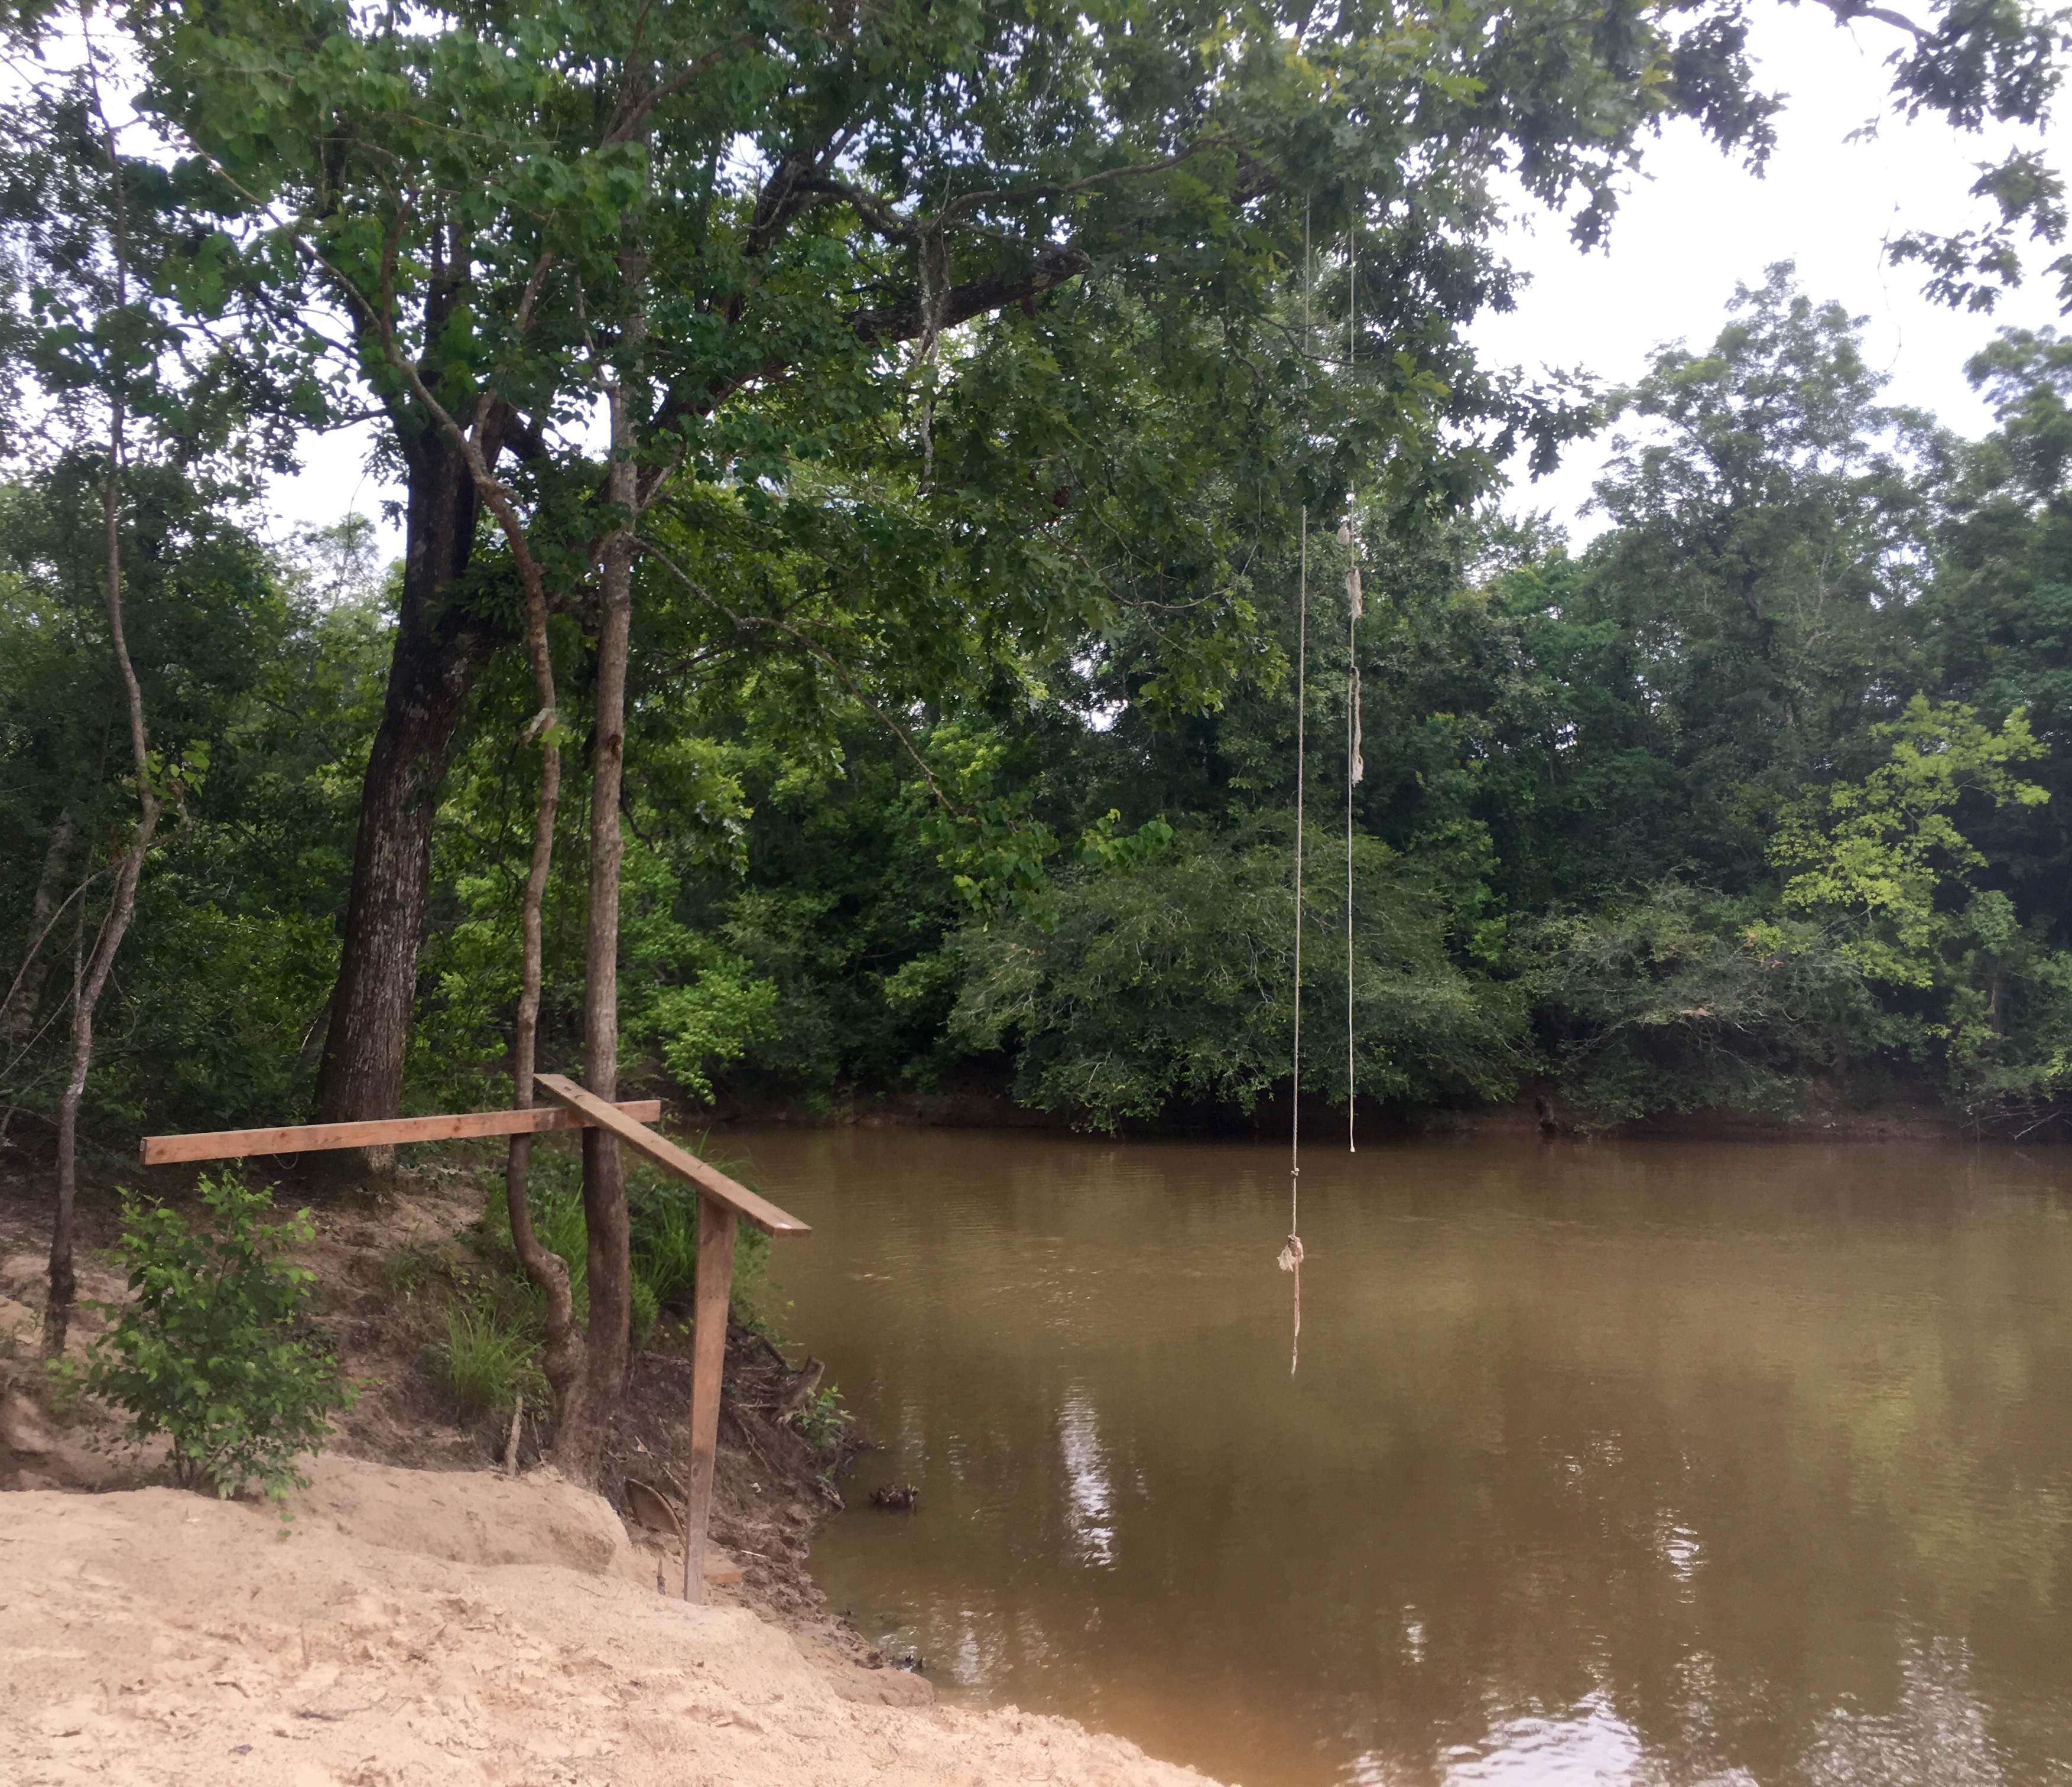 A rope swing on the bank of Porters River.